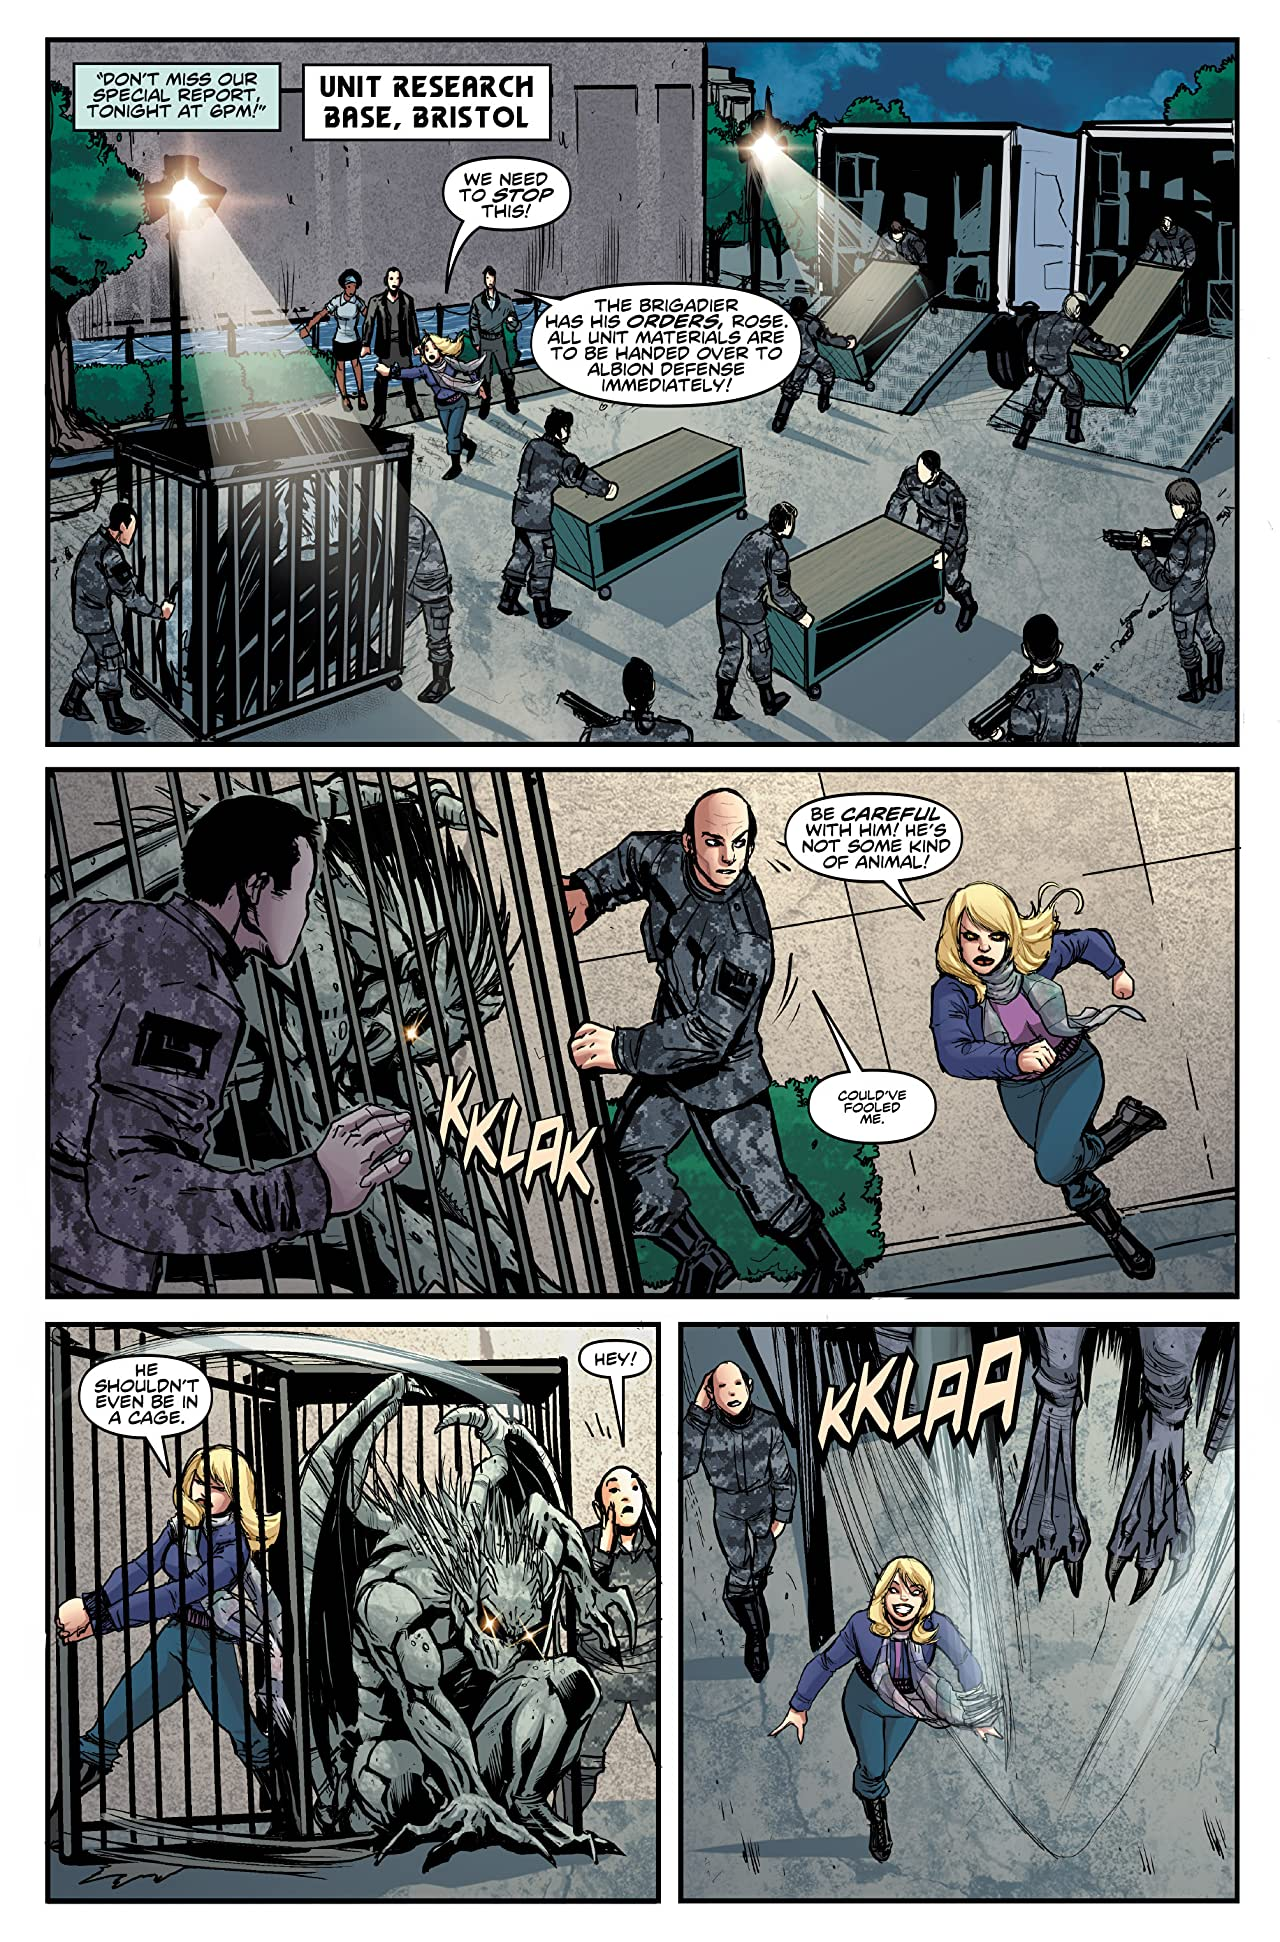 Doctor Who: The Ninth Doctor #2.8